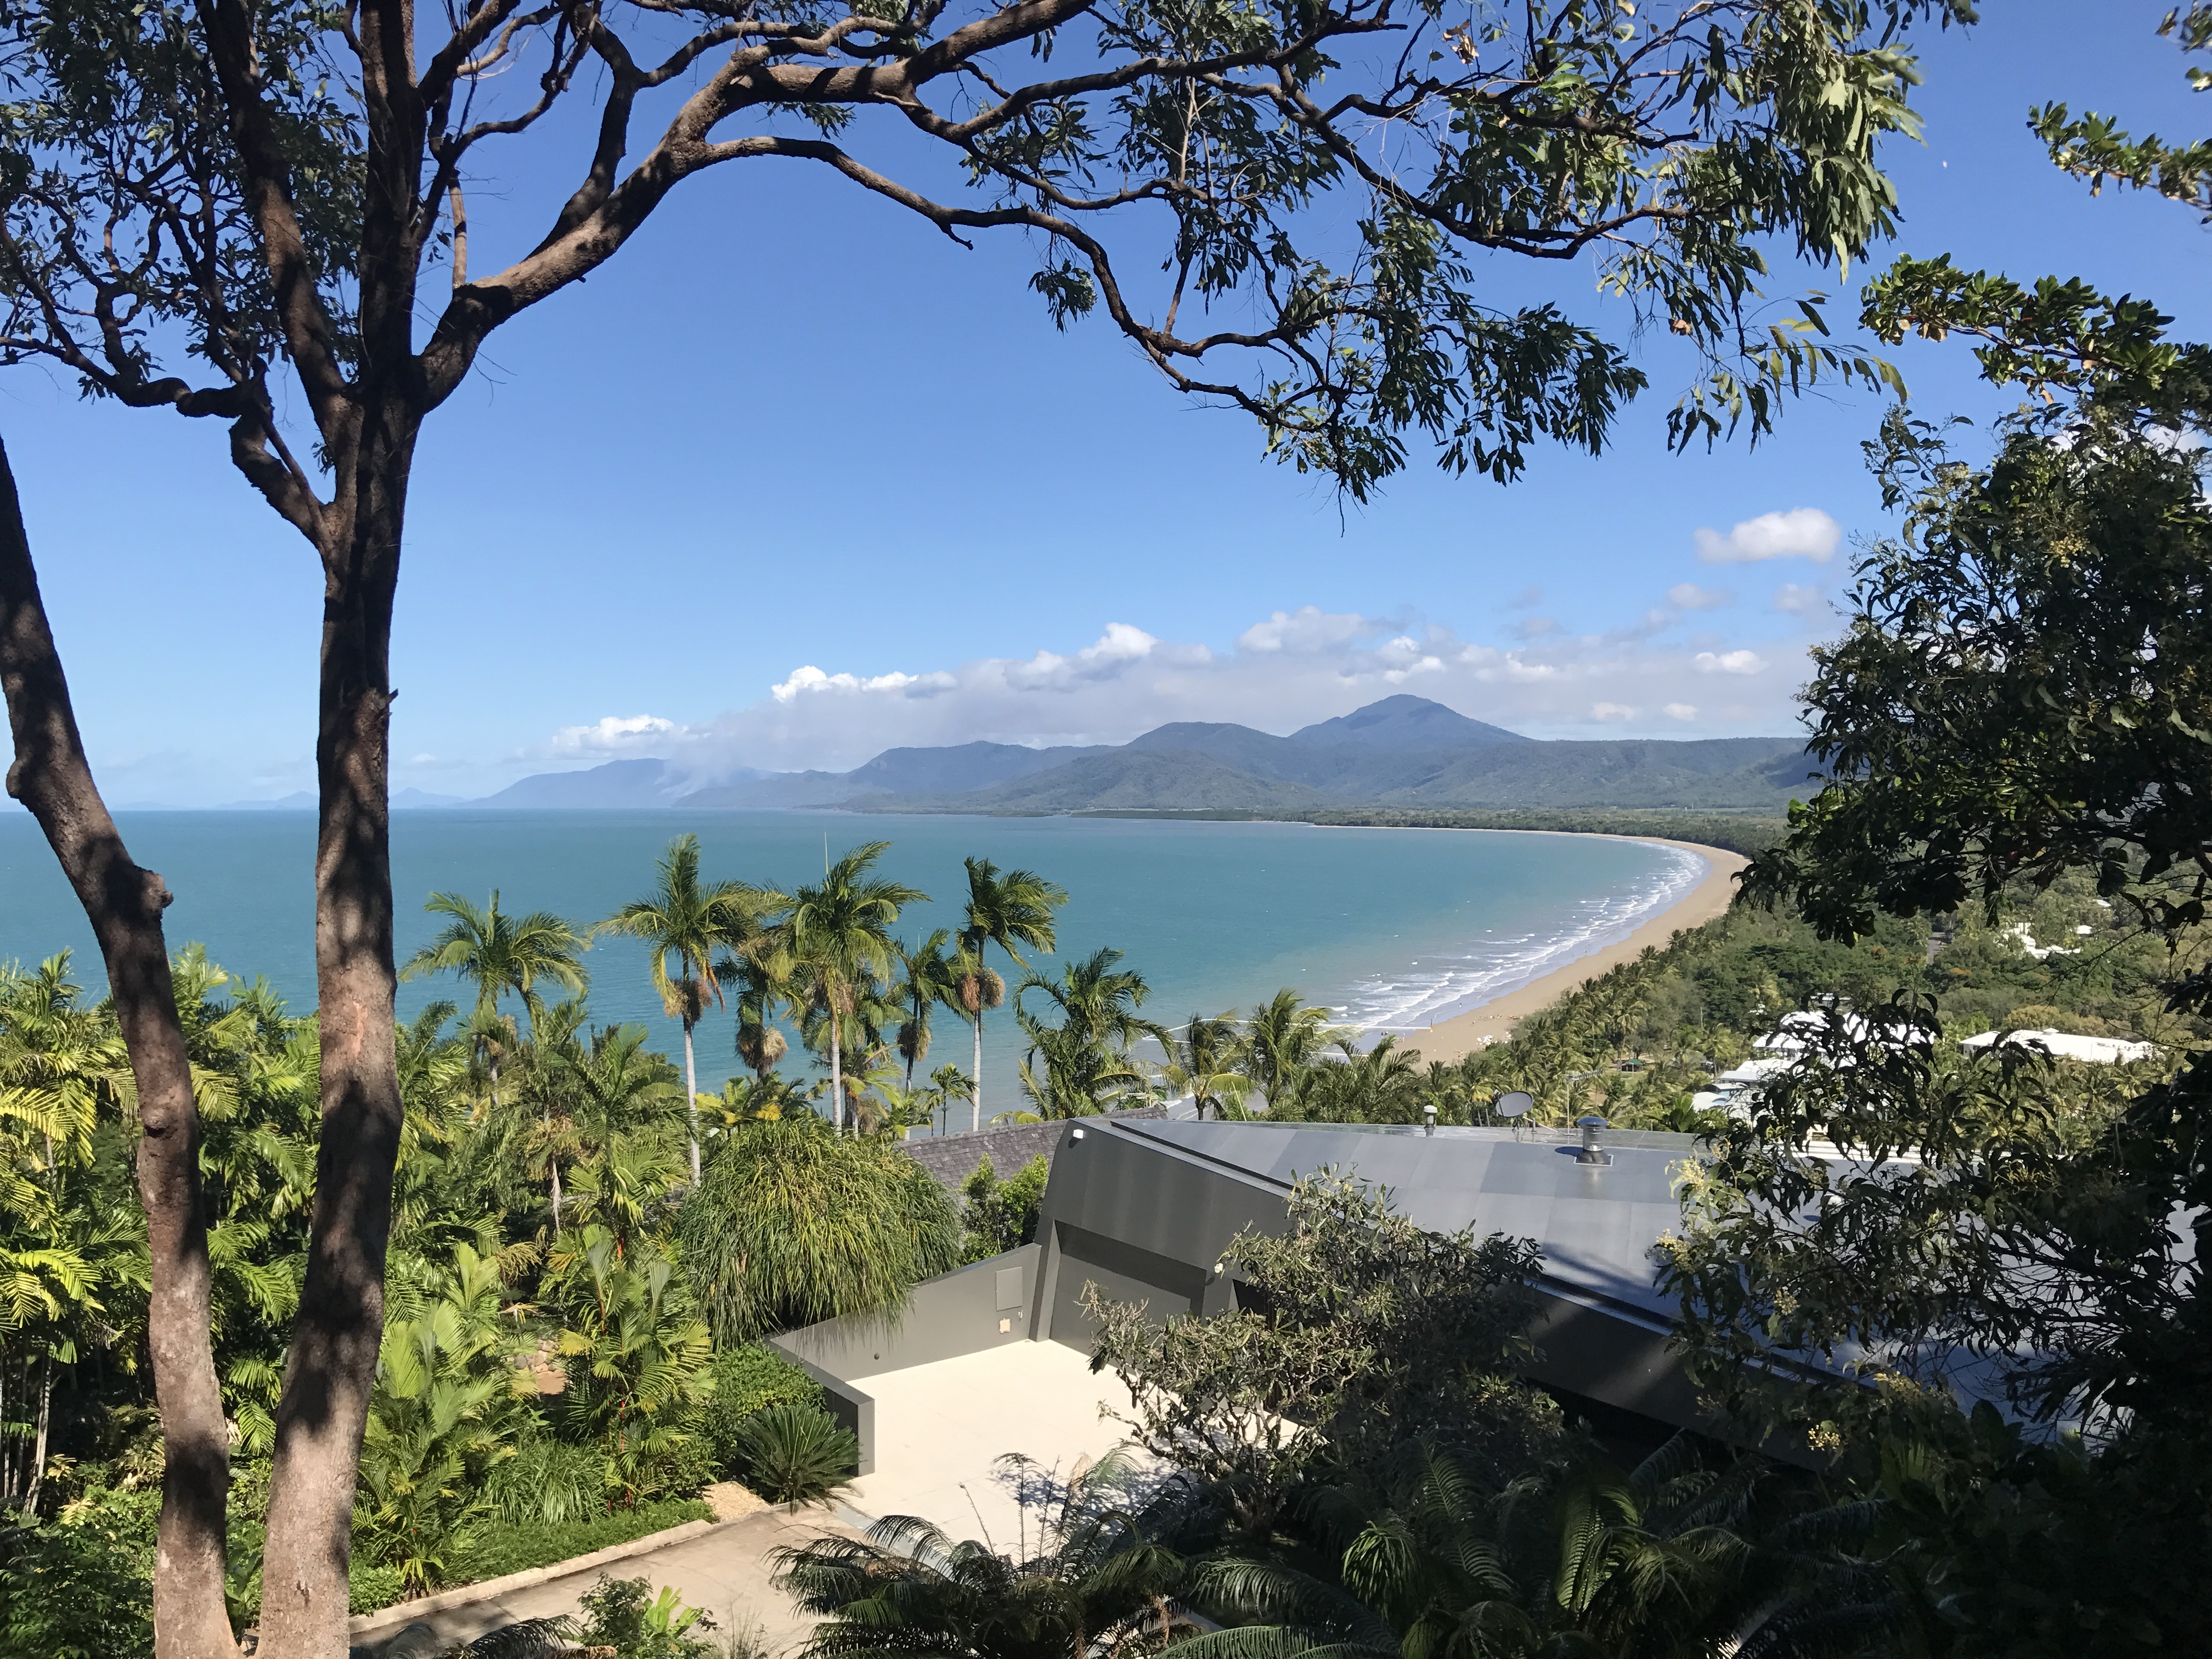 Lookout at Port Douglas